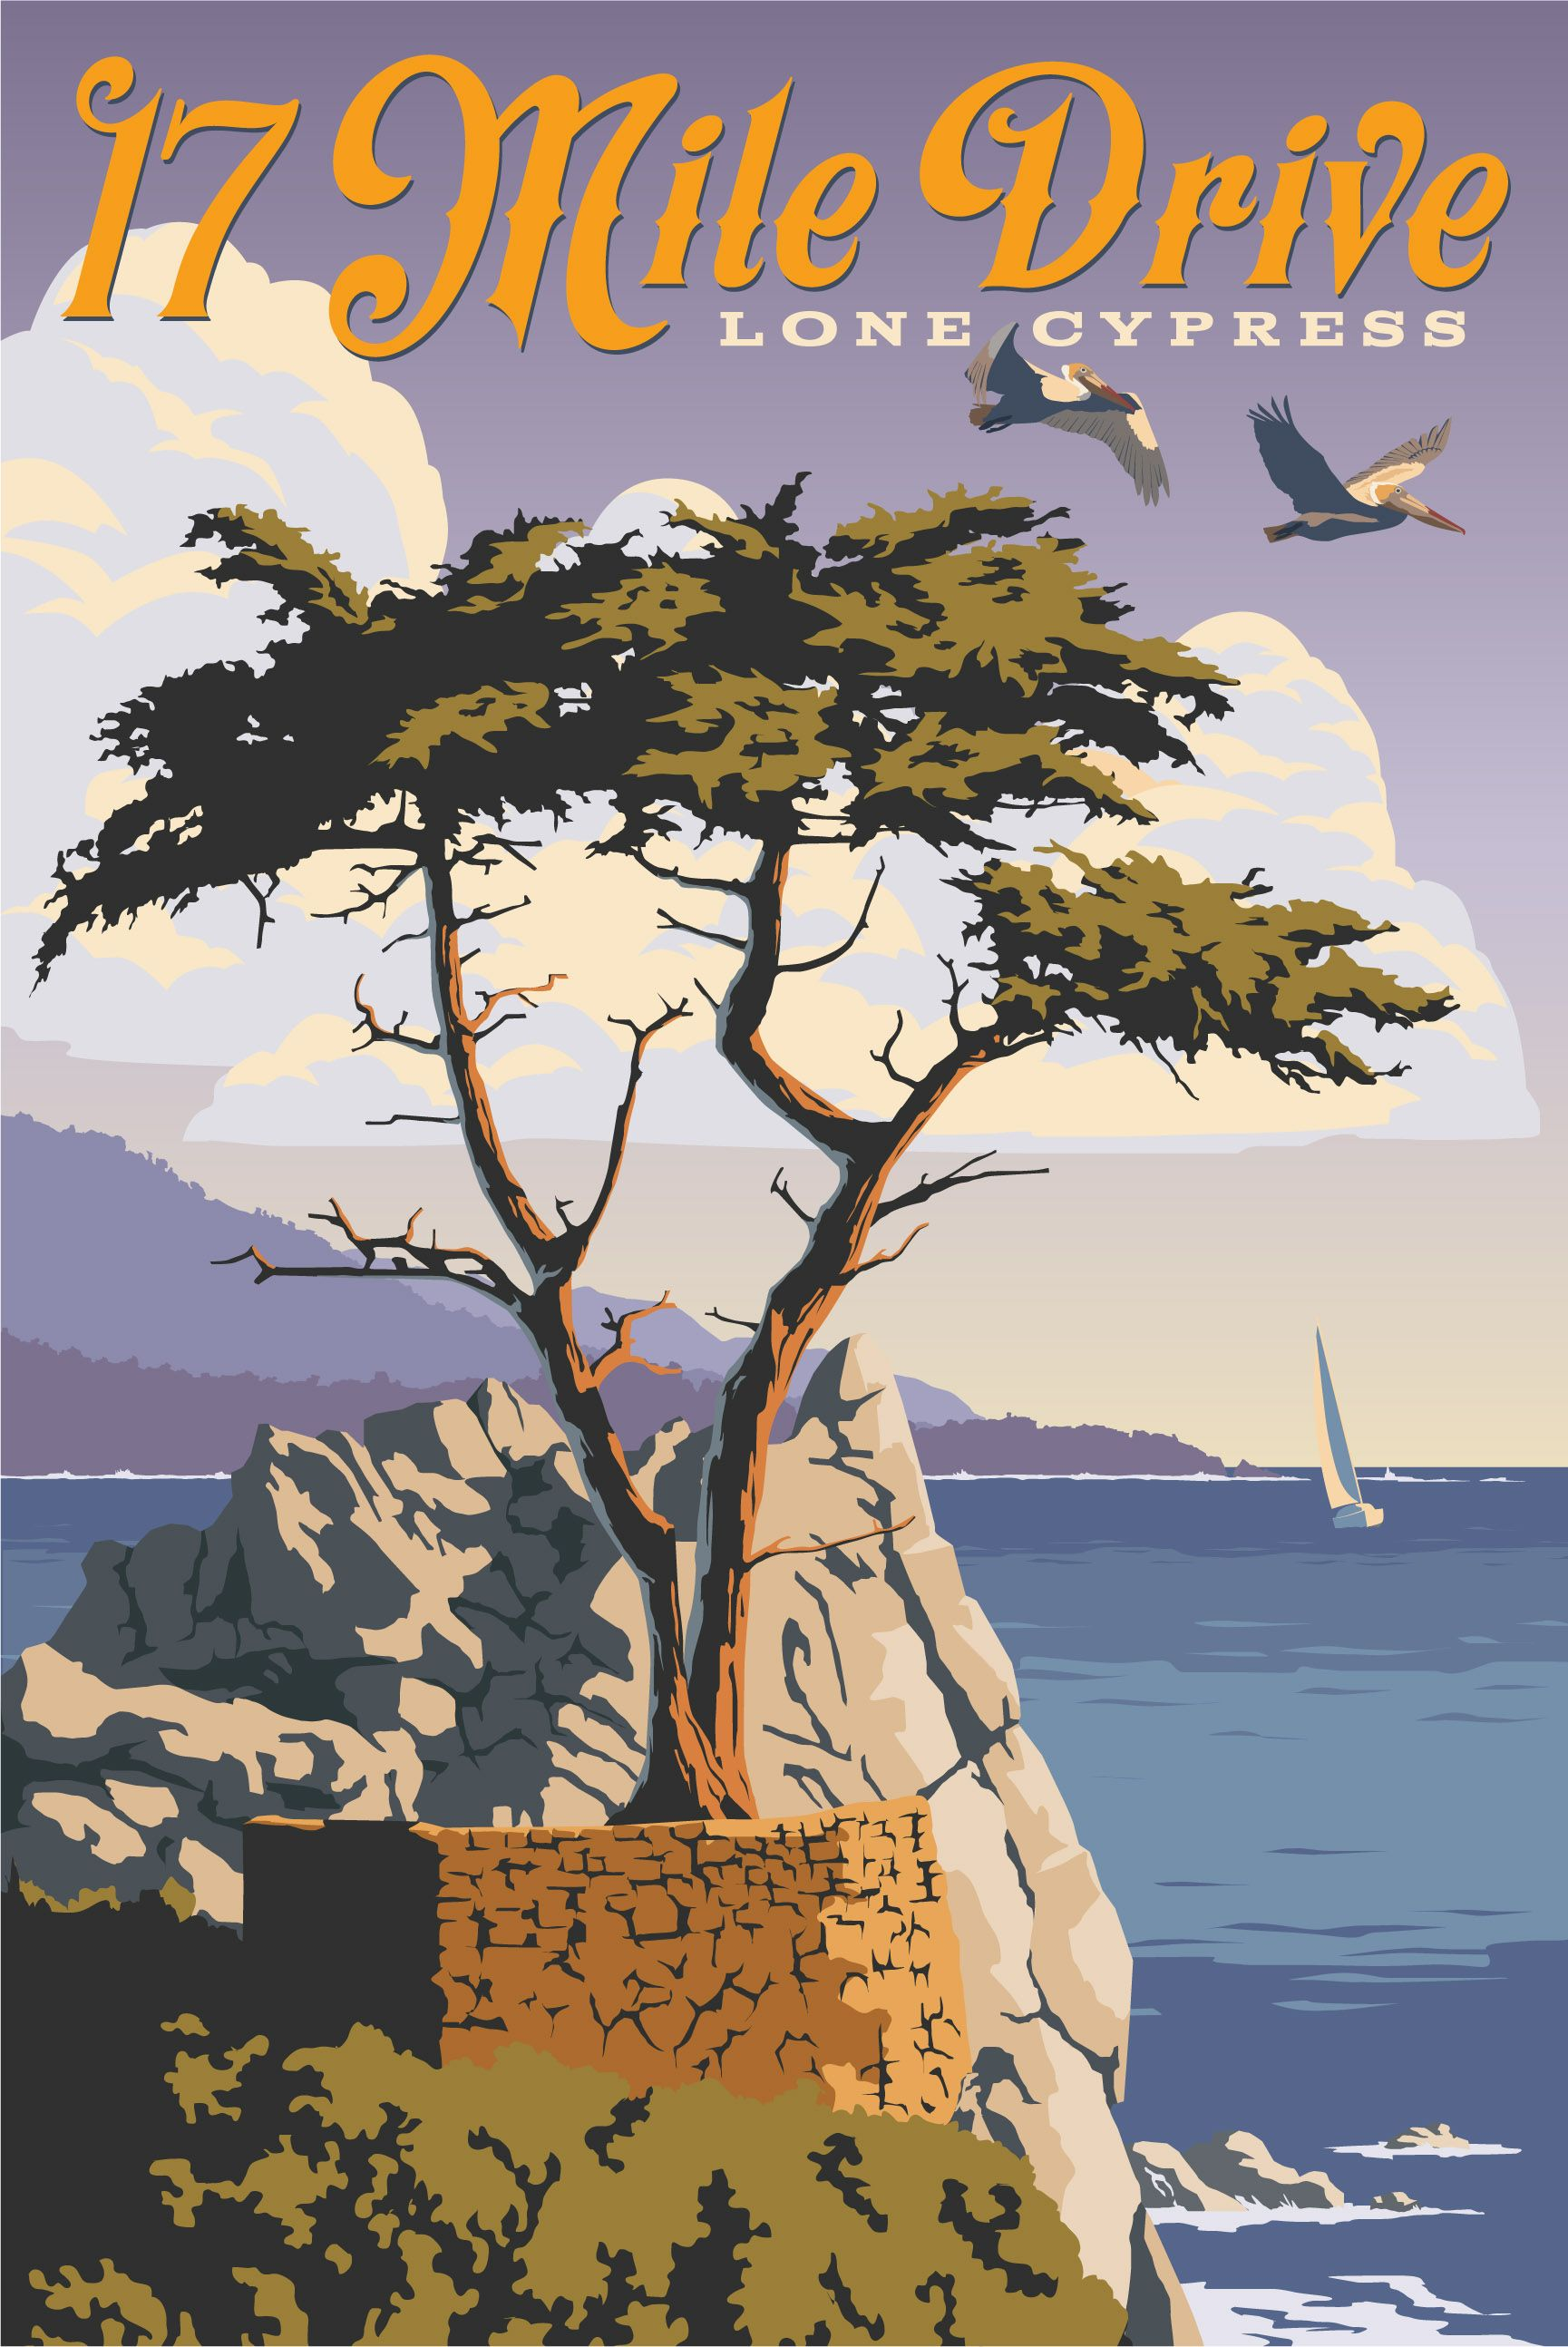 Just Looking Gallery Steve Thomas 17 Mile Drive Vintage Travel Posters Travel Posters California Poster